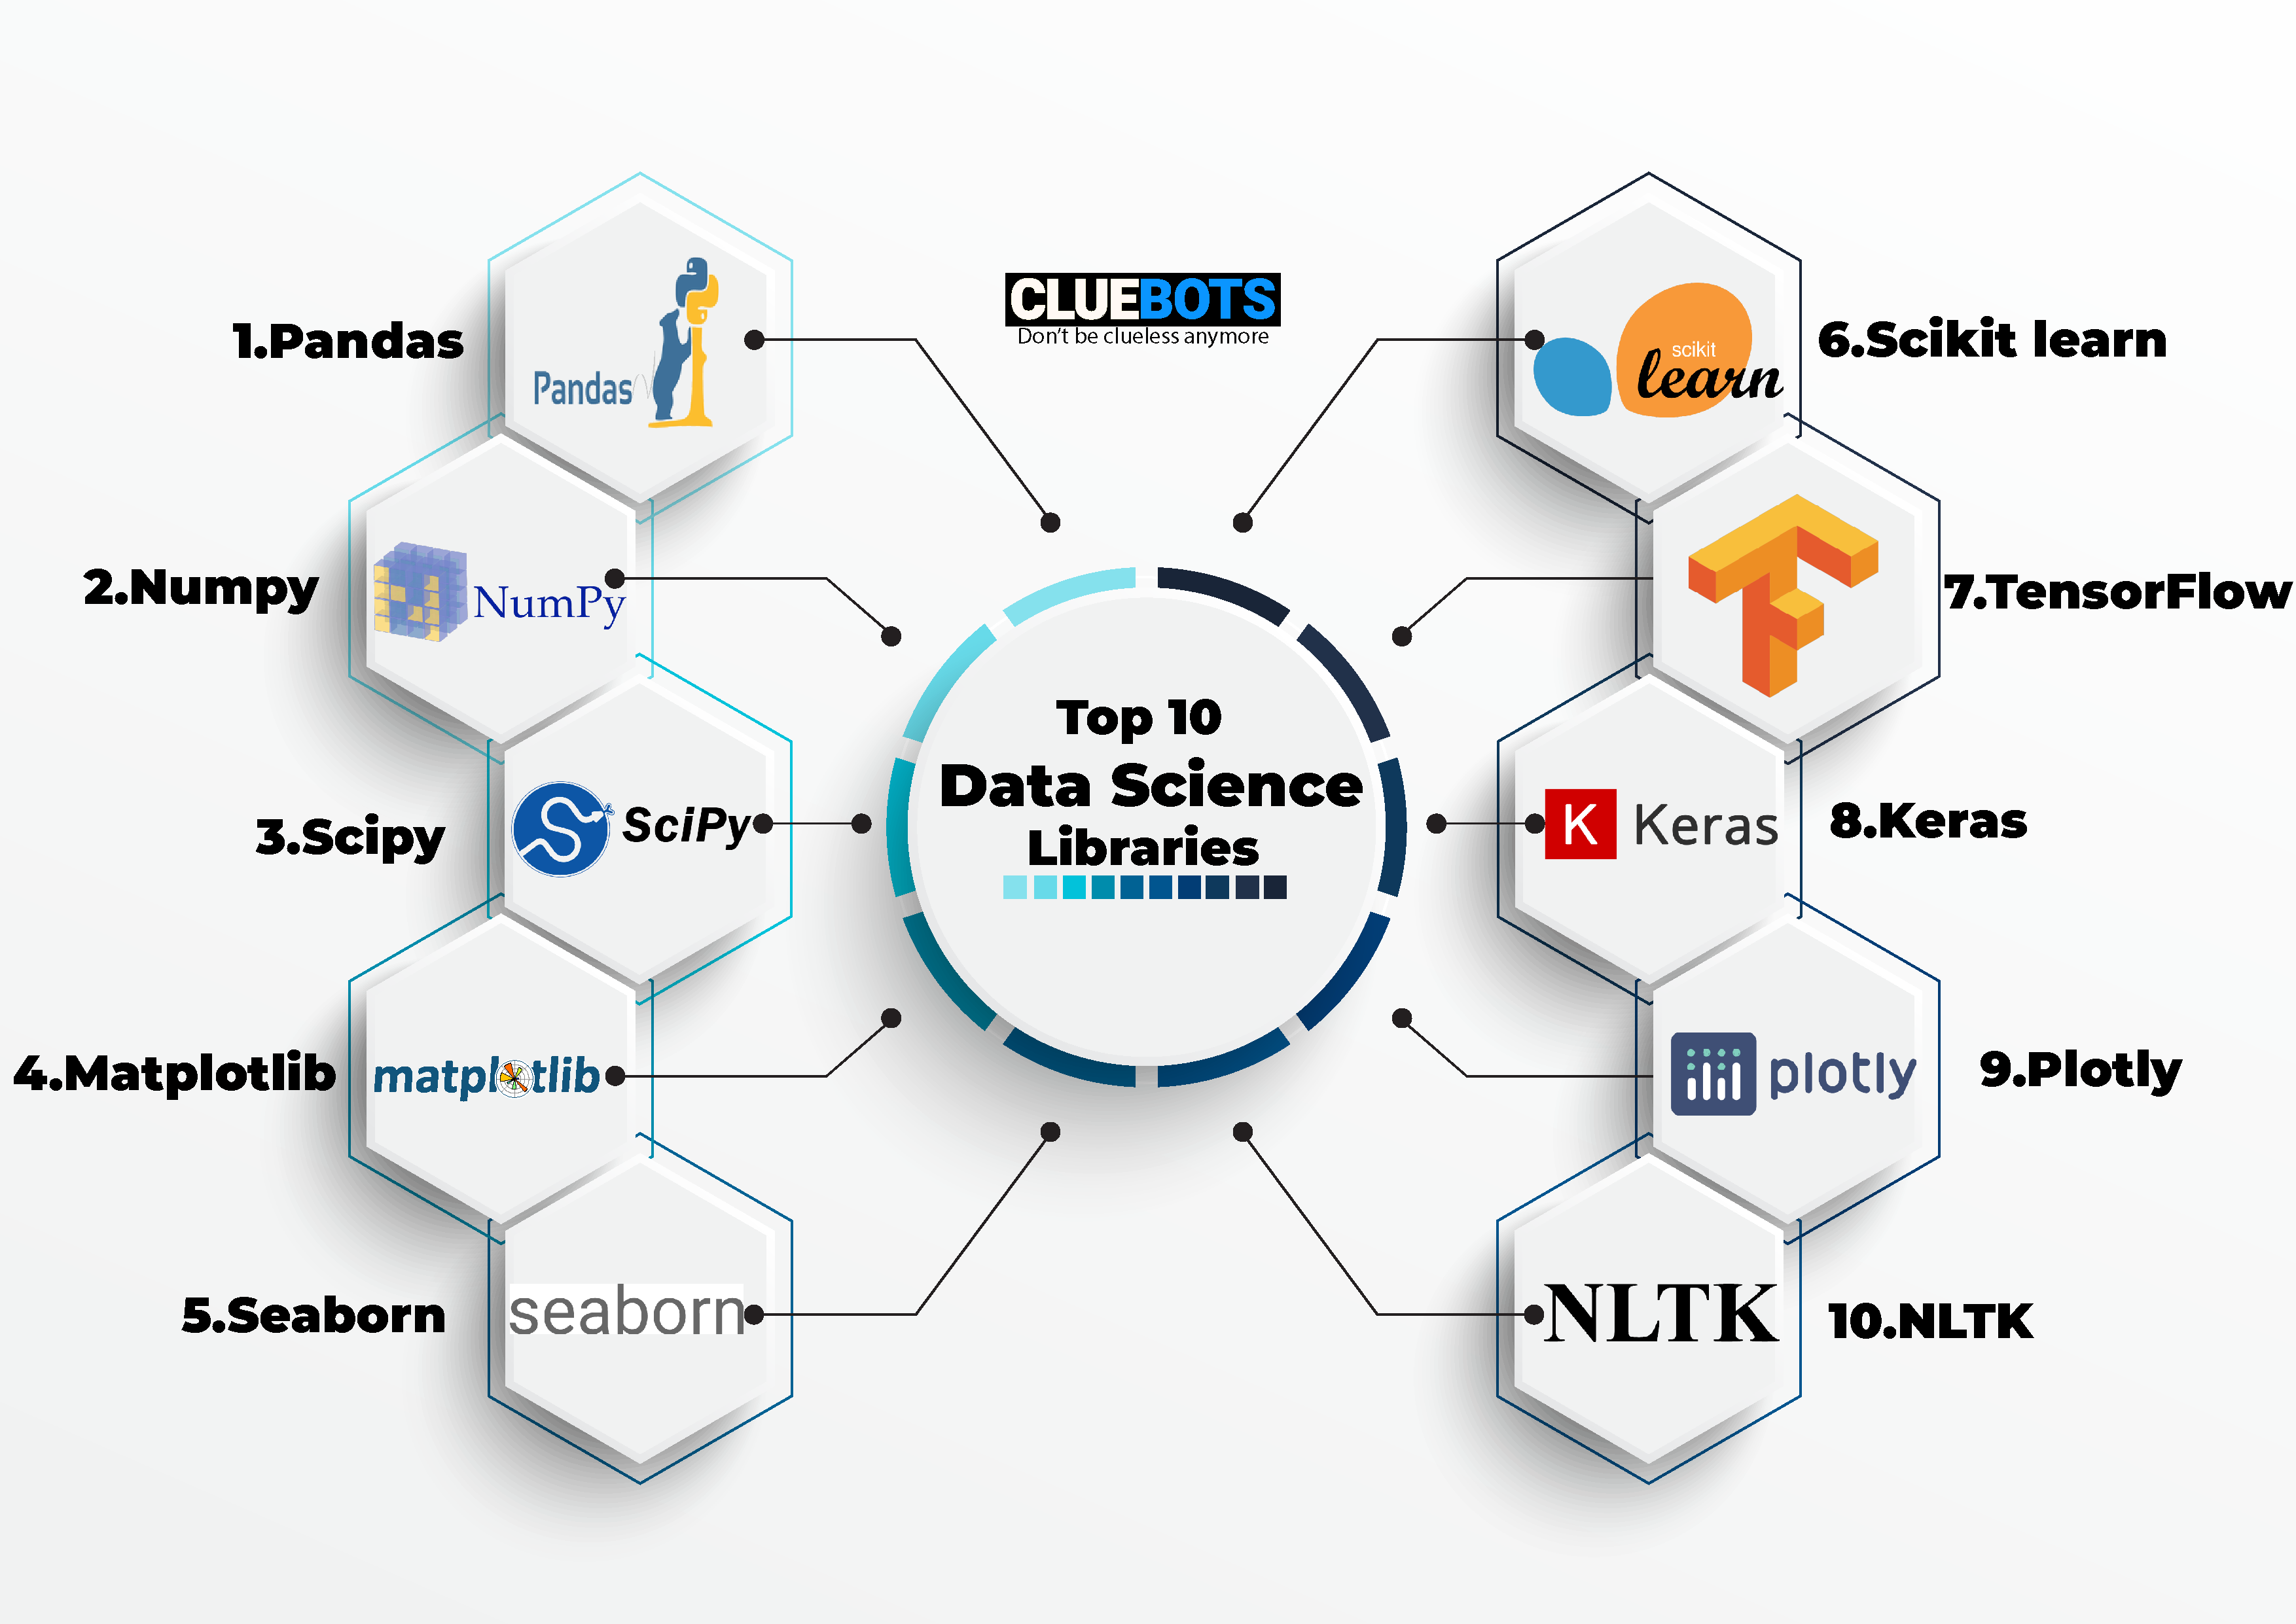 Top 10 Data Science Libraries